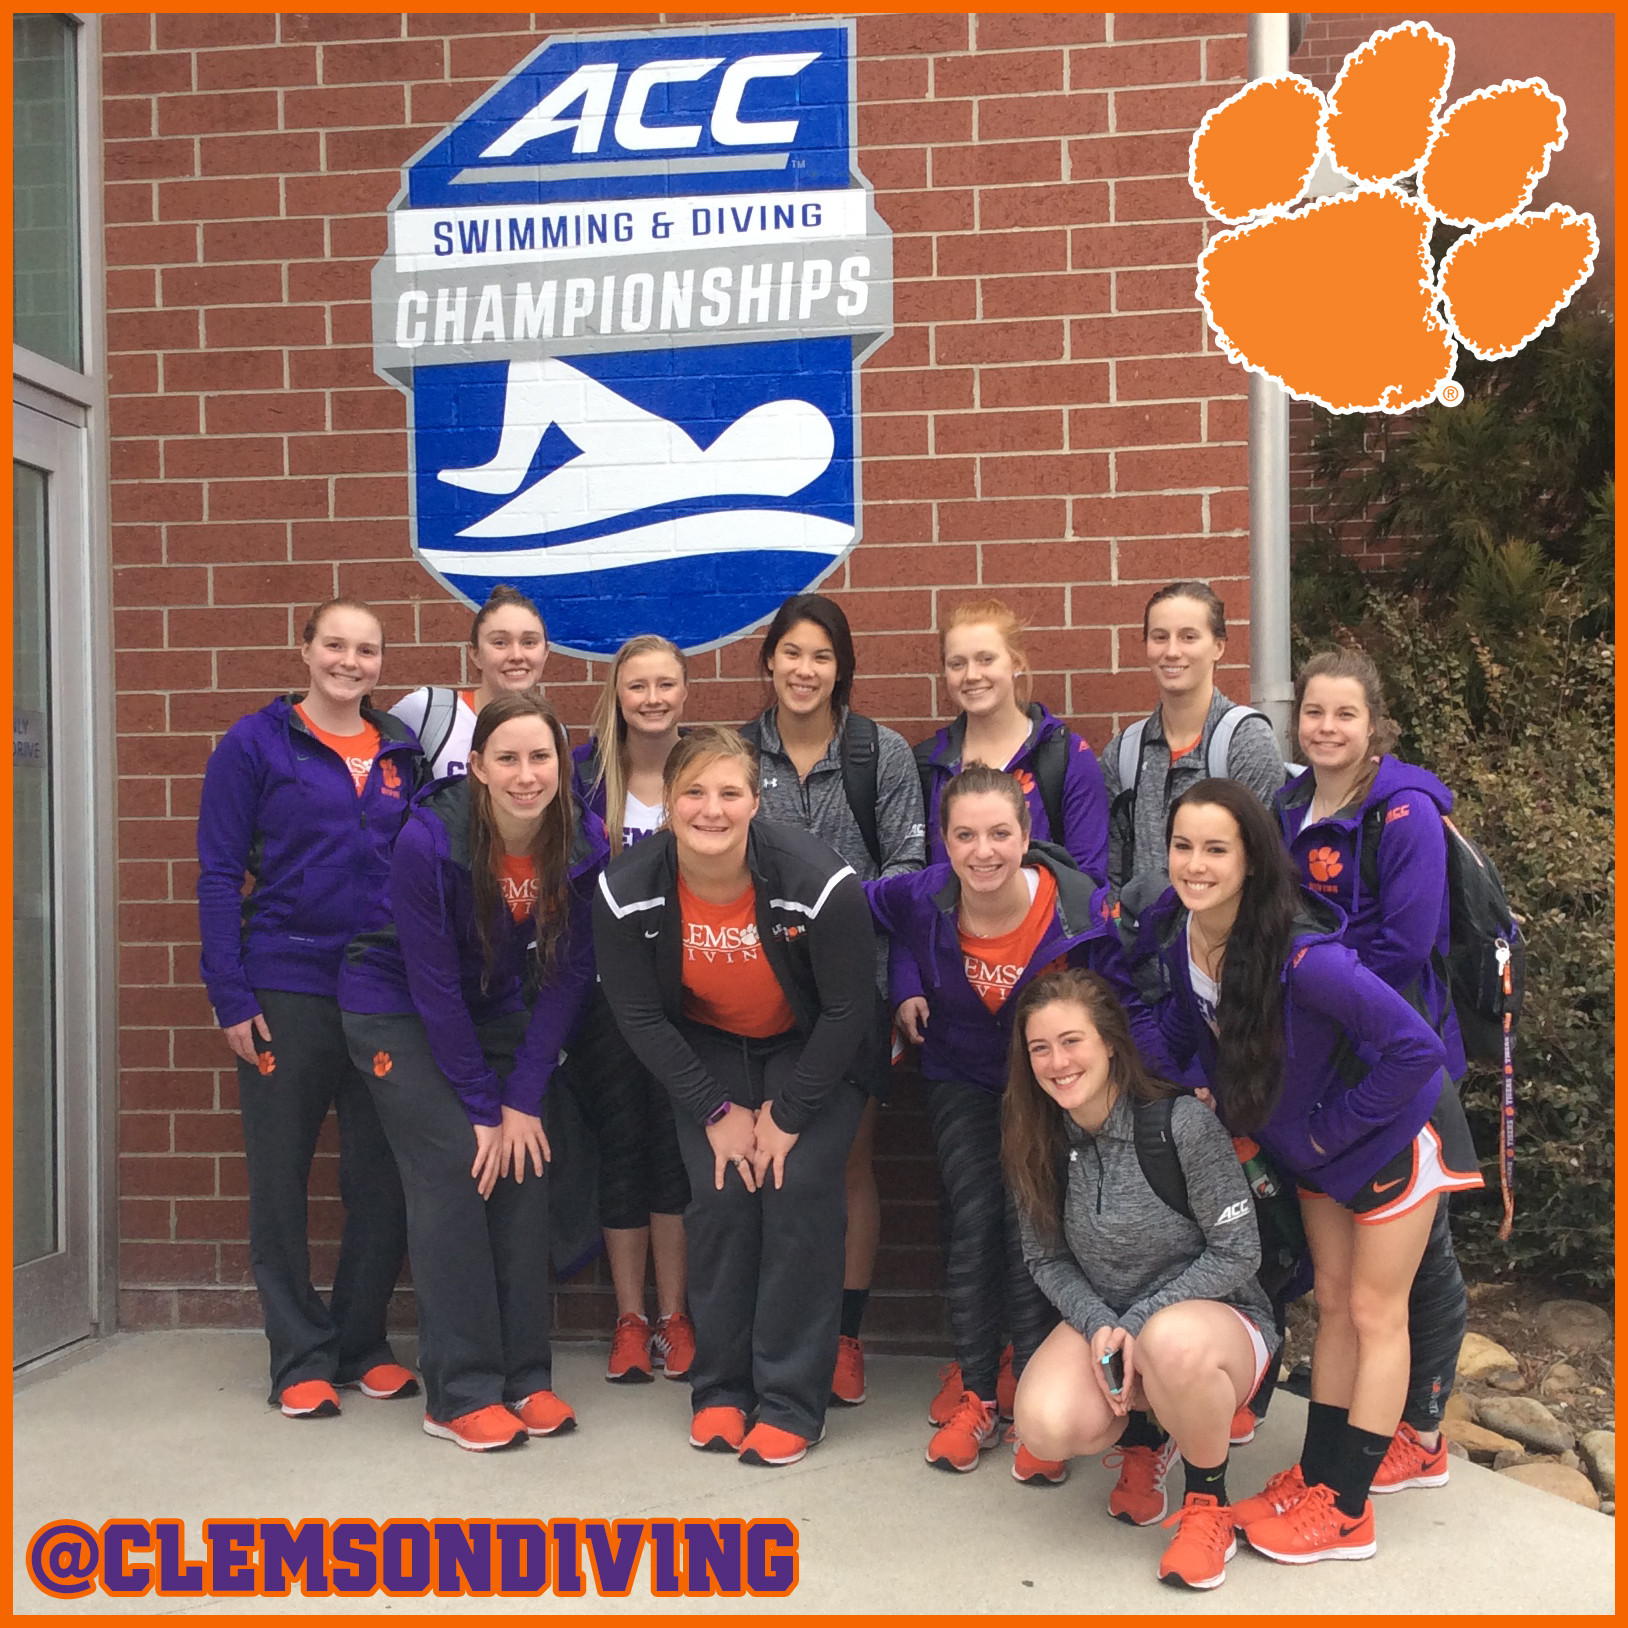 Tigers Finish Strong in Platform at 2015 ACC Championships